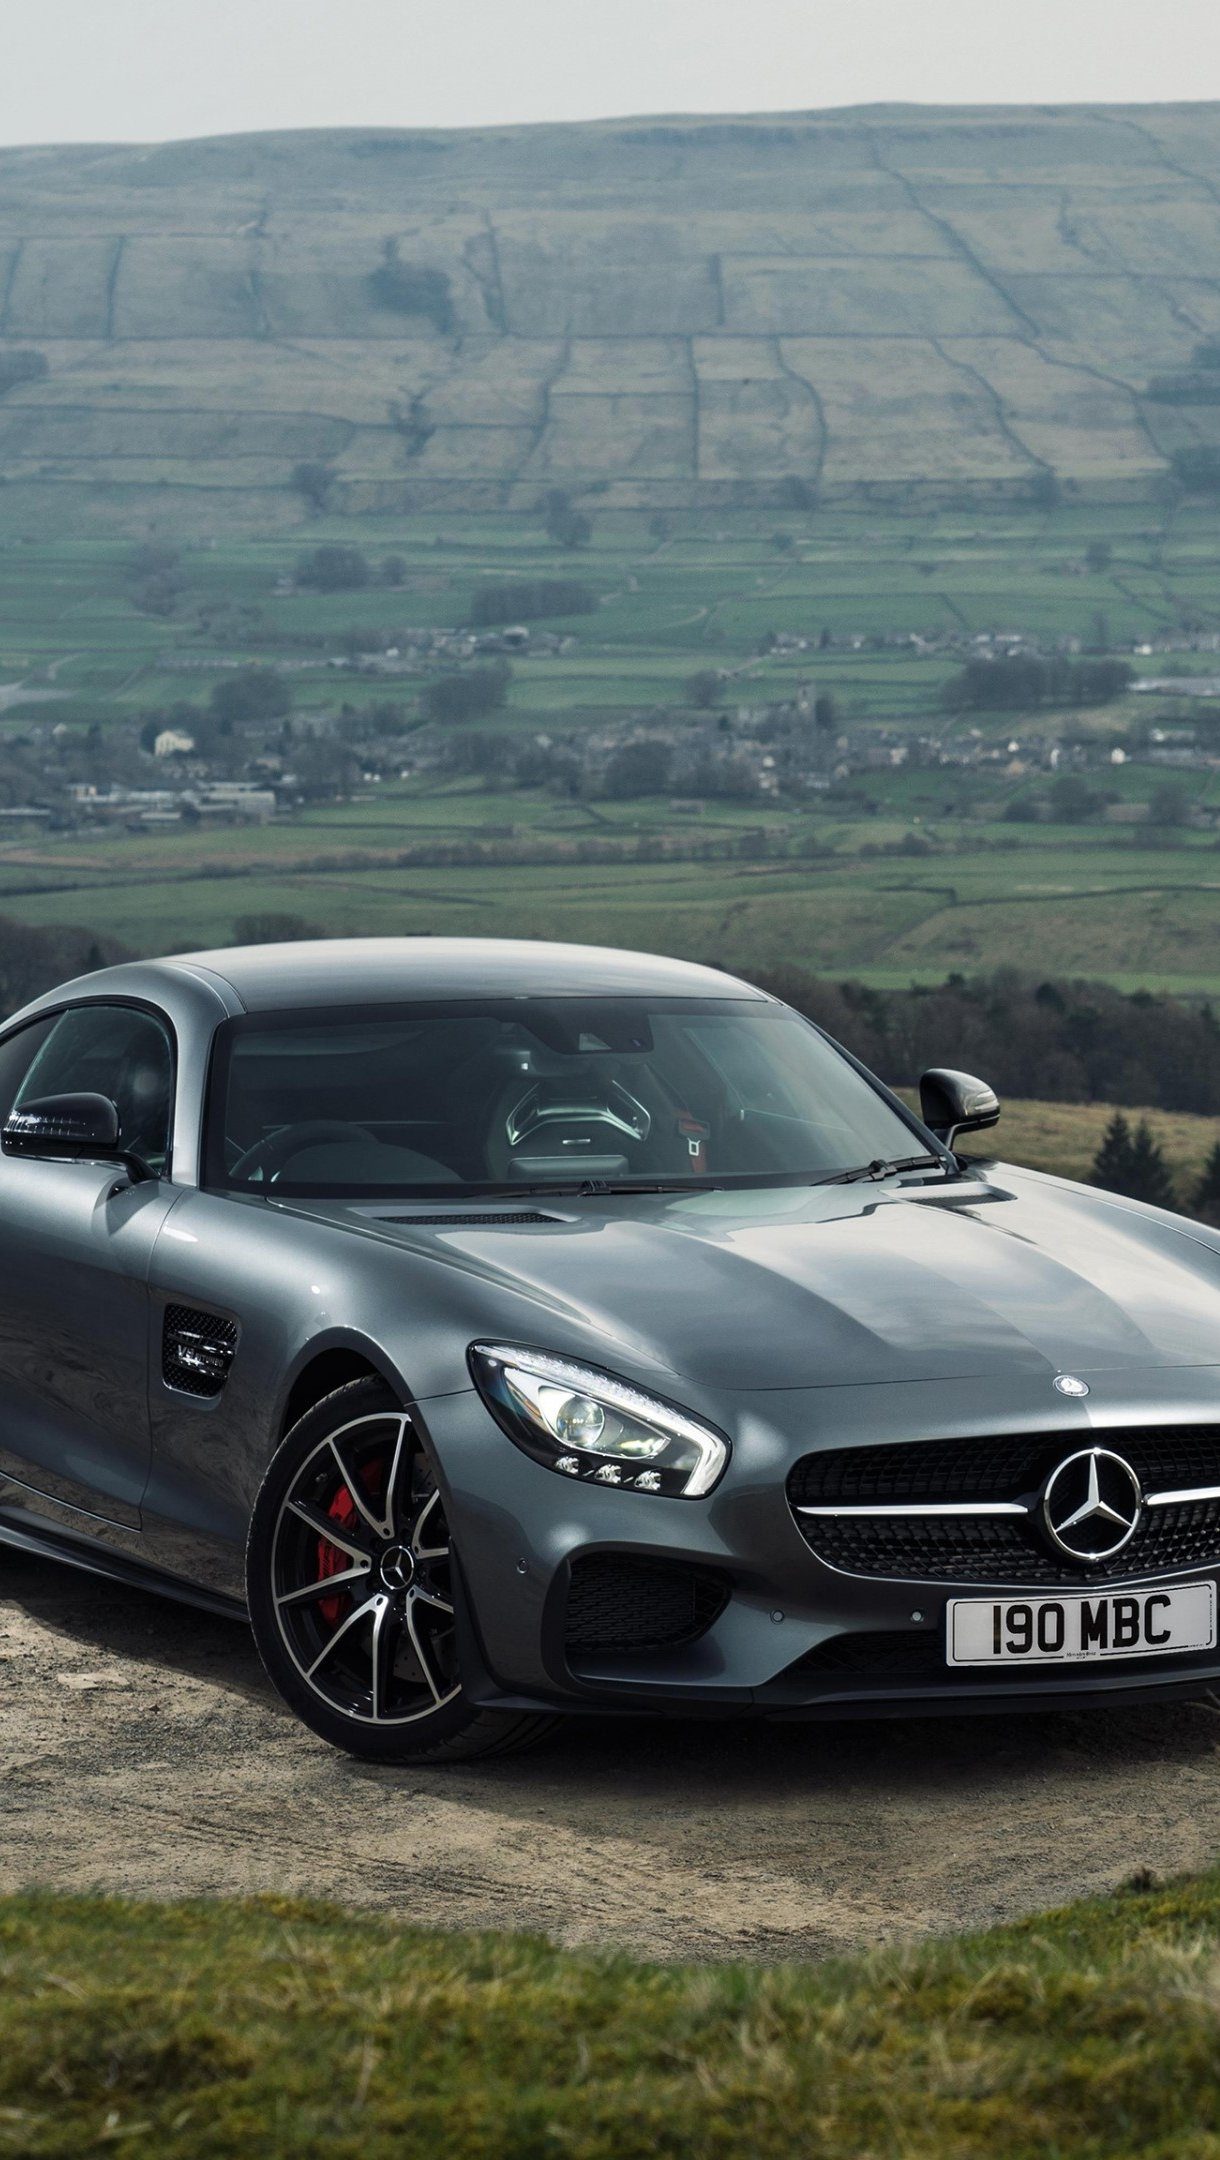 Wallpaper Mercedes AMG GT S gray in mountains Vertical